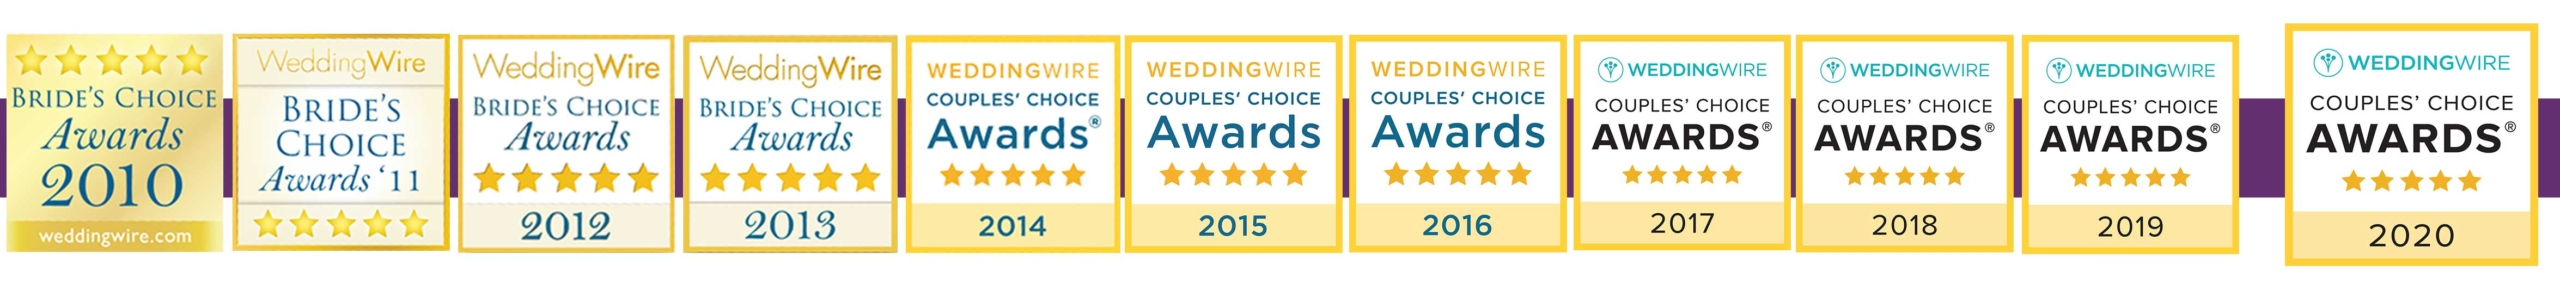 WeddingWire-Something 2 Dance 2 - Couples Choice Award 2020